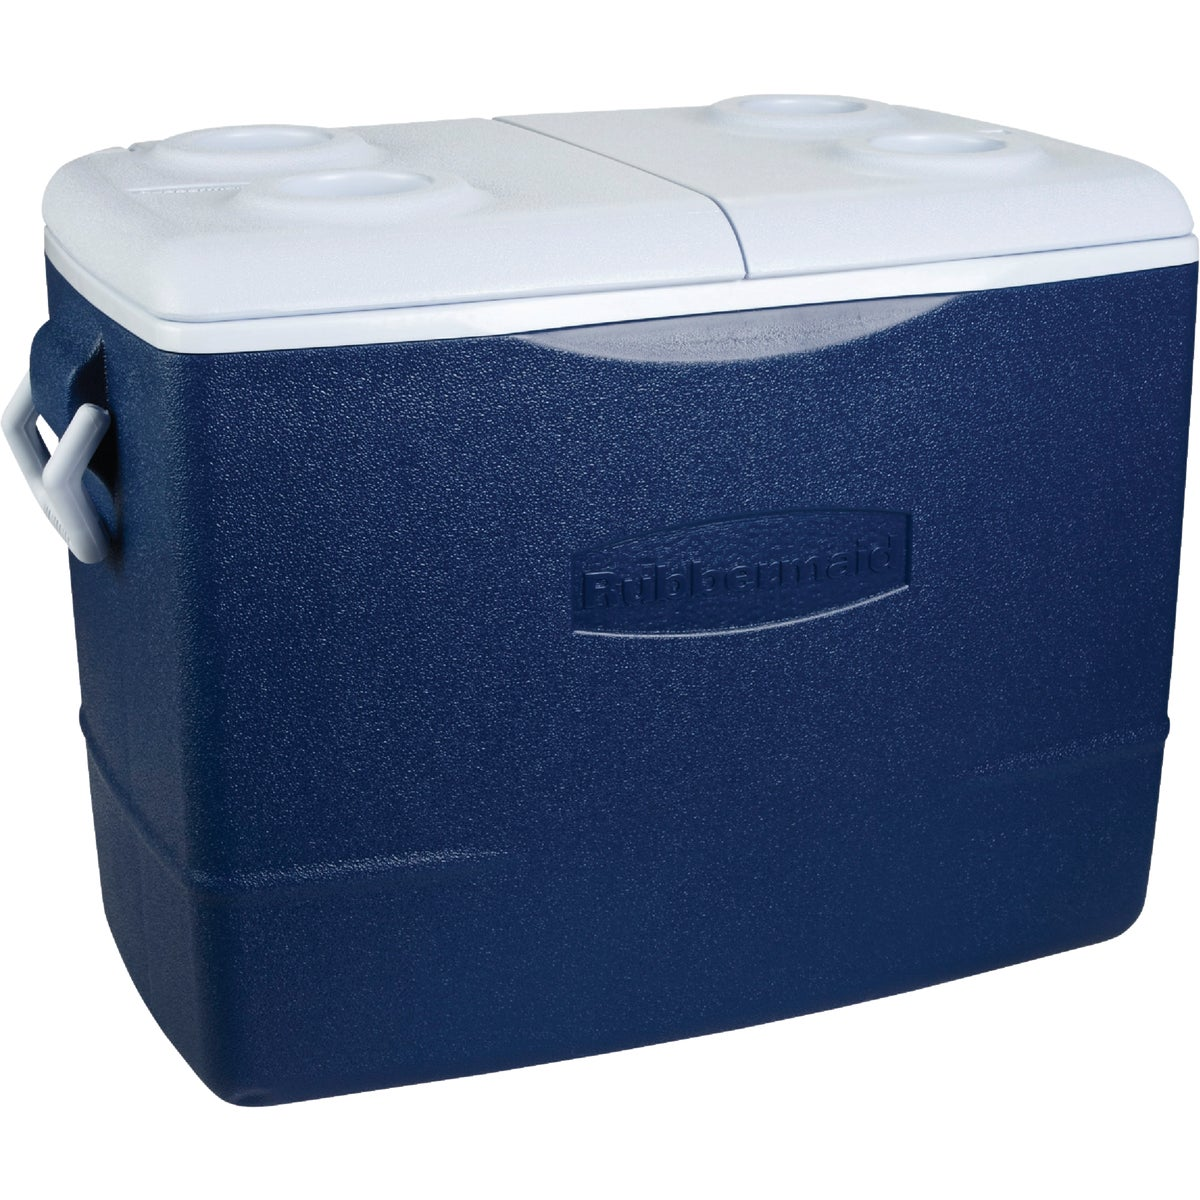 48QT BLUE COOLER - 2A1502MODBL by Rubbermaid